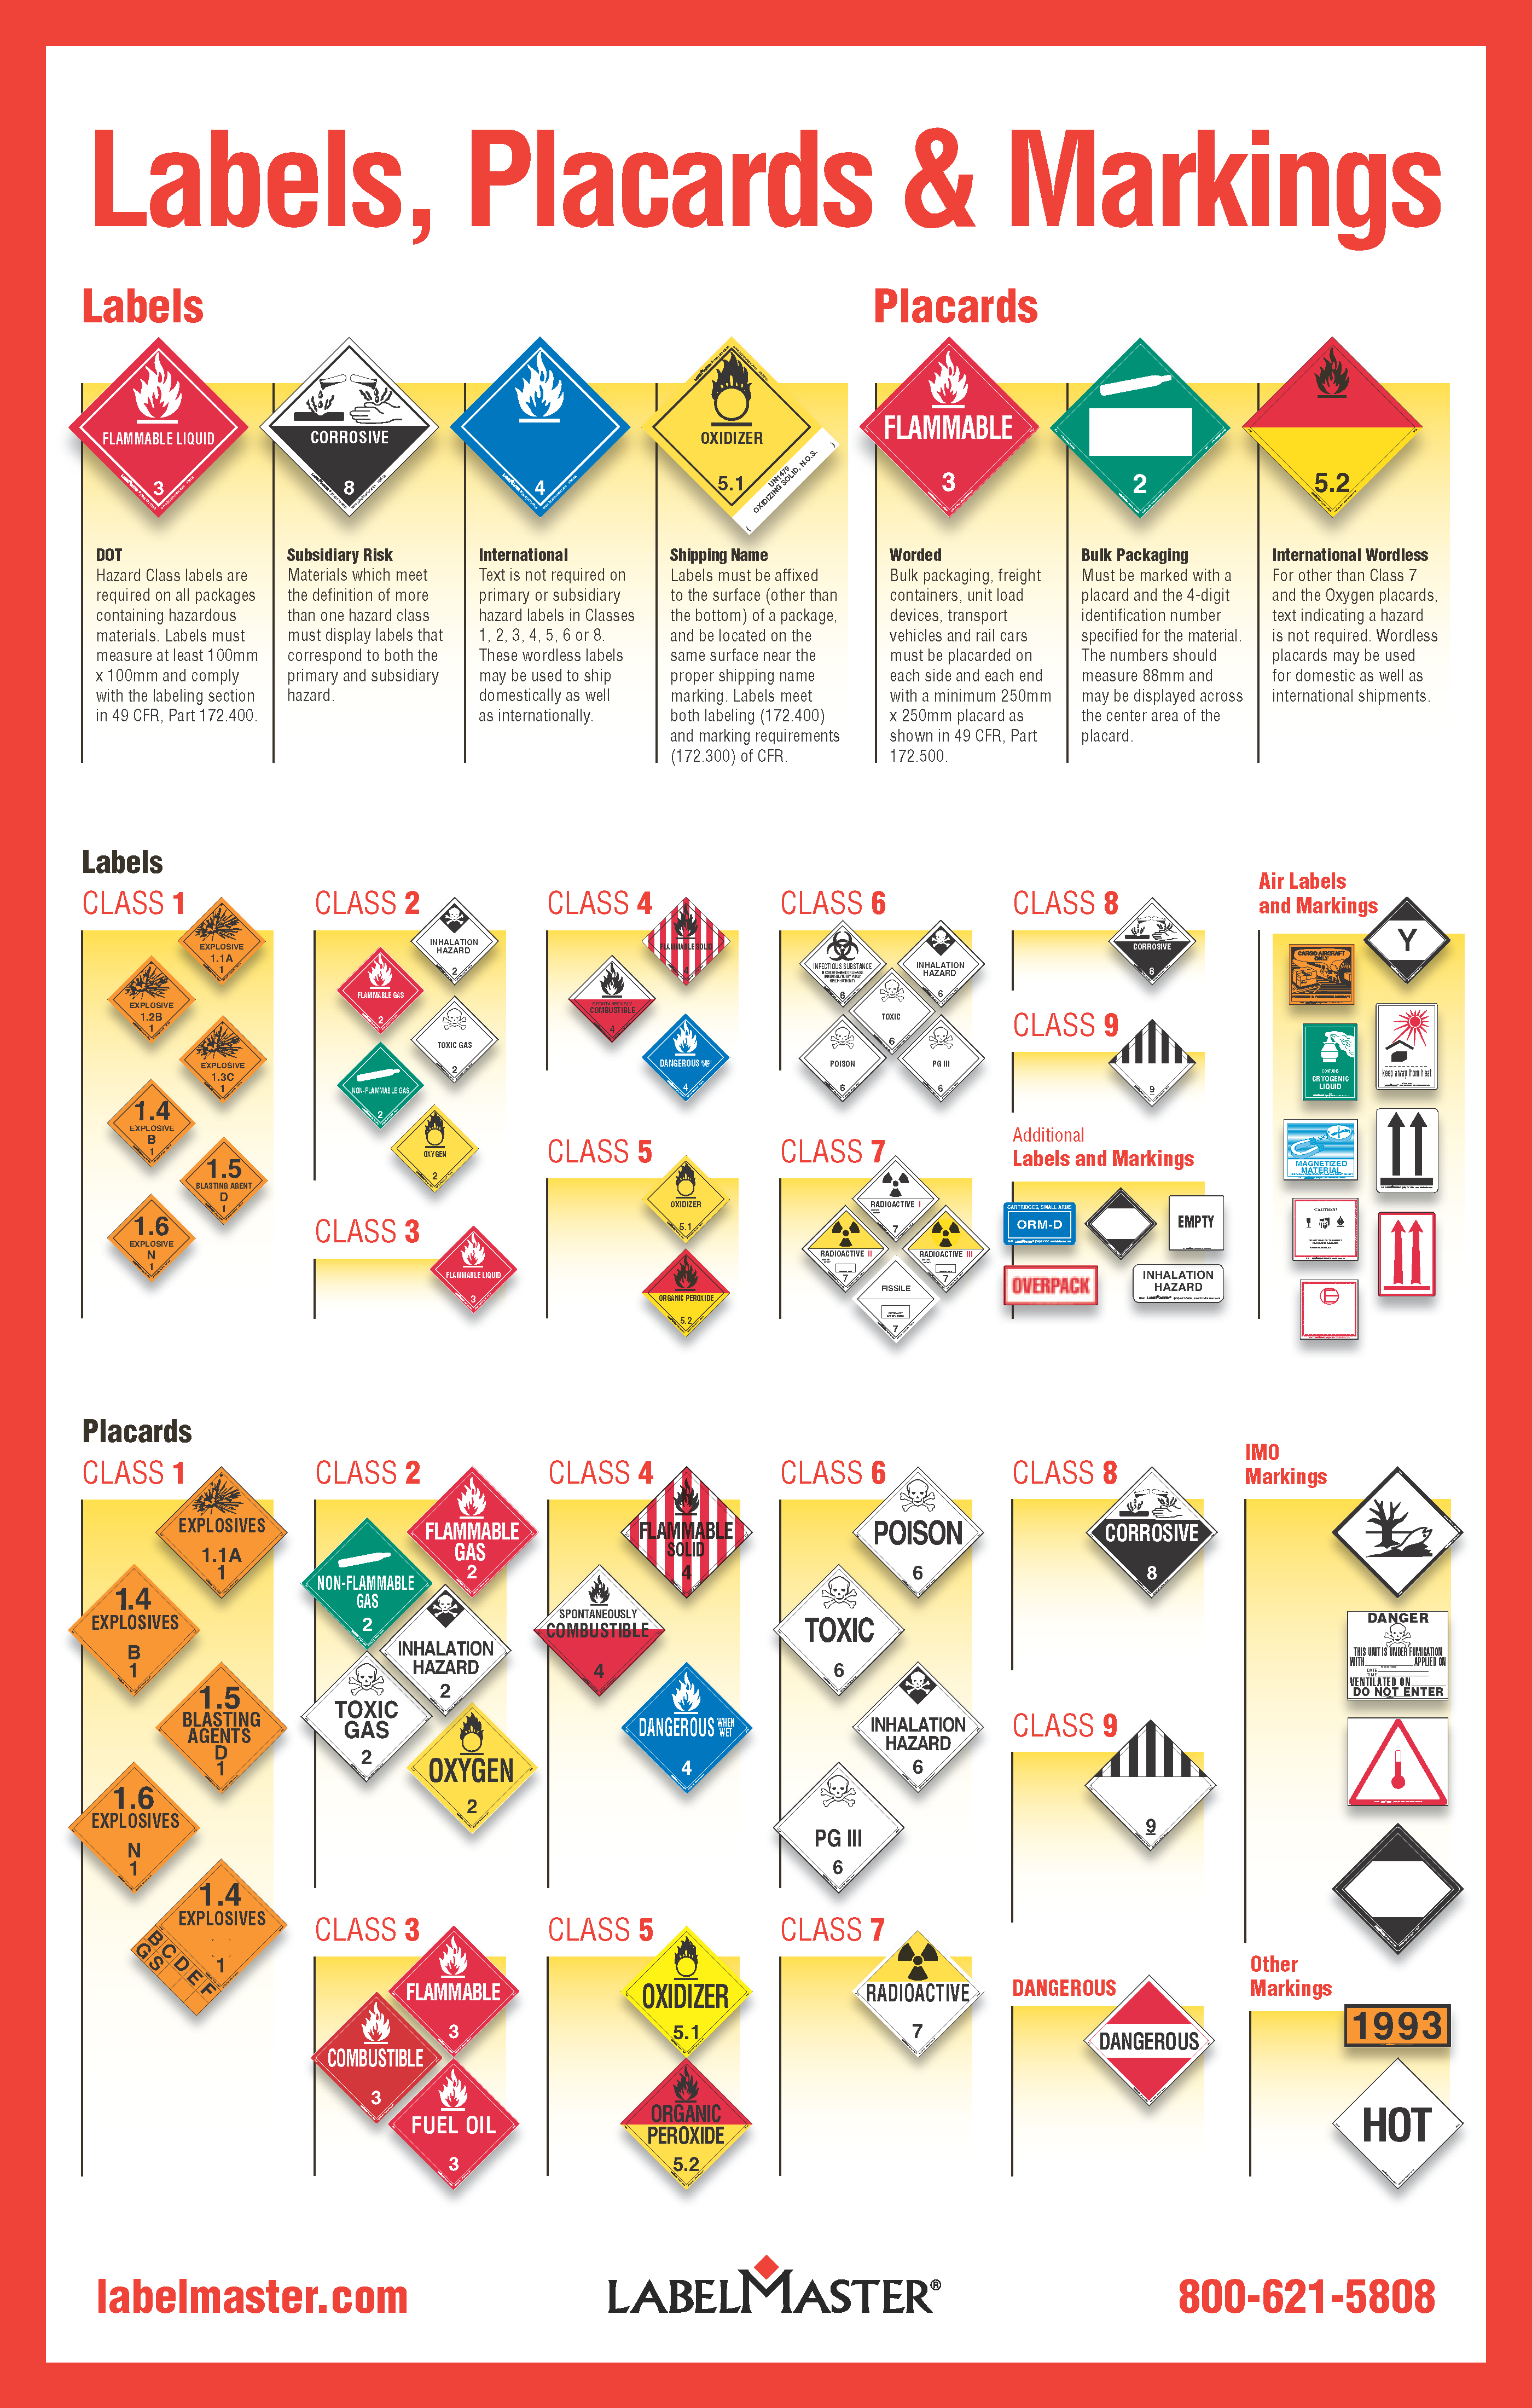 Shipping Dangerous Goods - Ground Transport Guide - Labelmaster